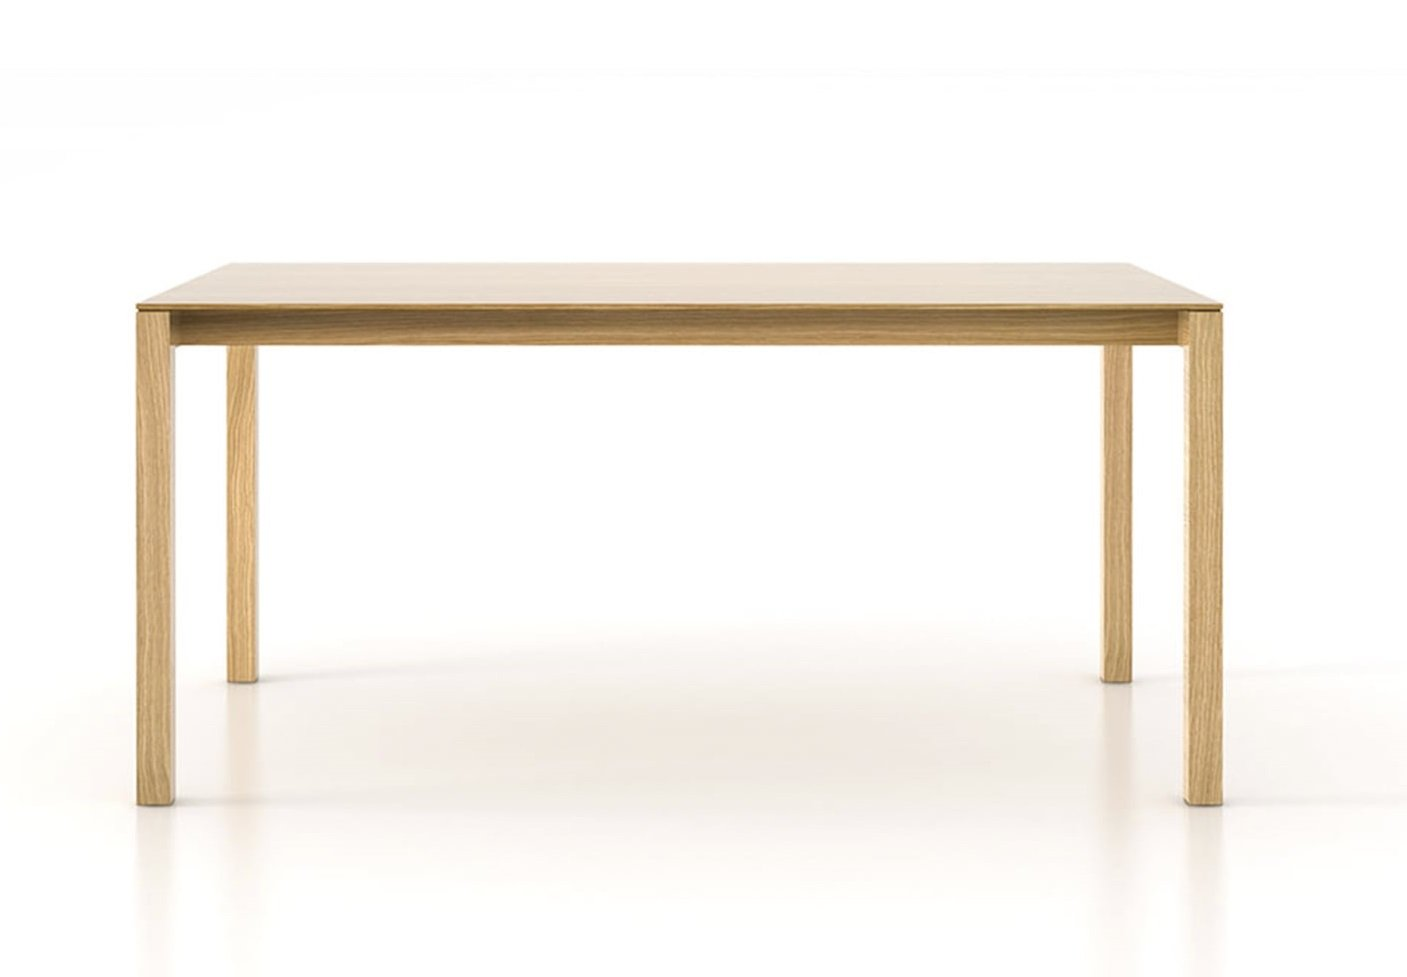 Bass Dining Table from Punt Mobles, designed by Borja Garcia